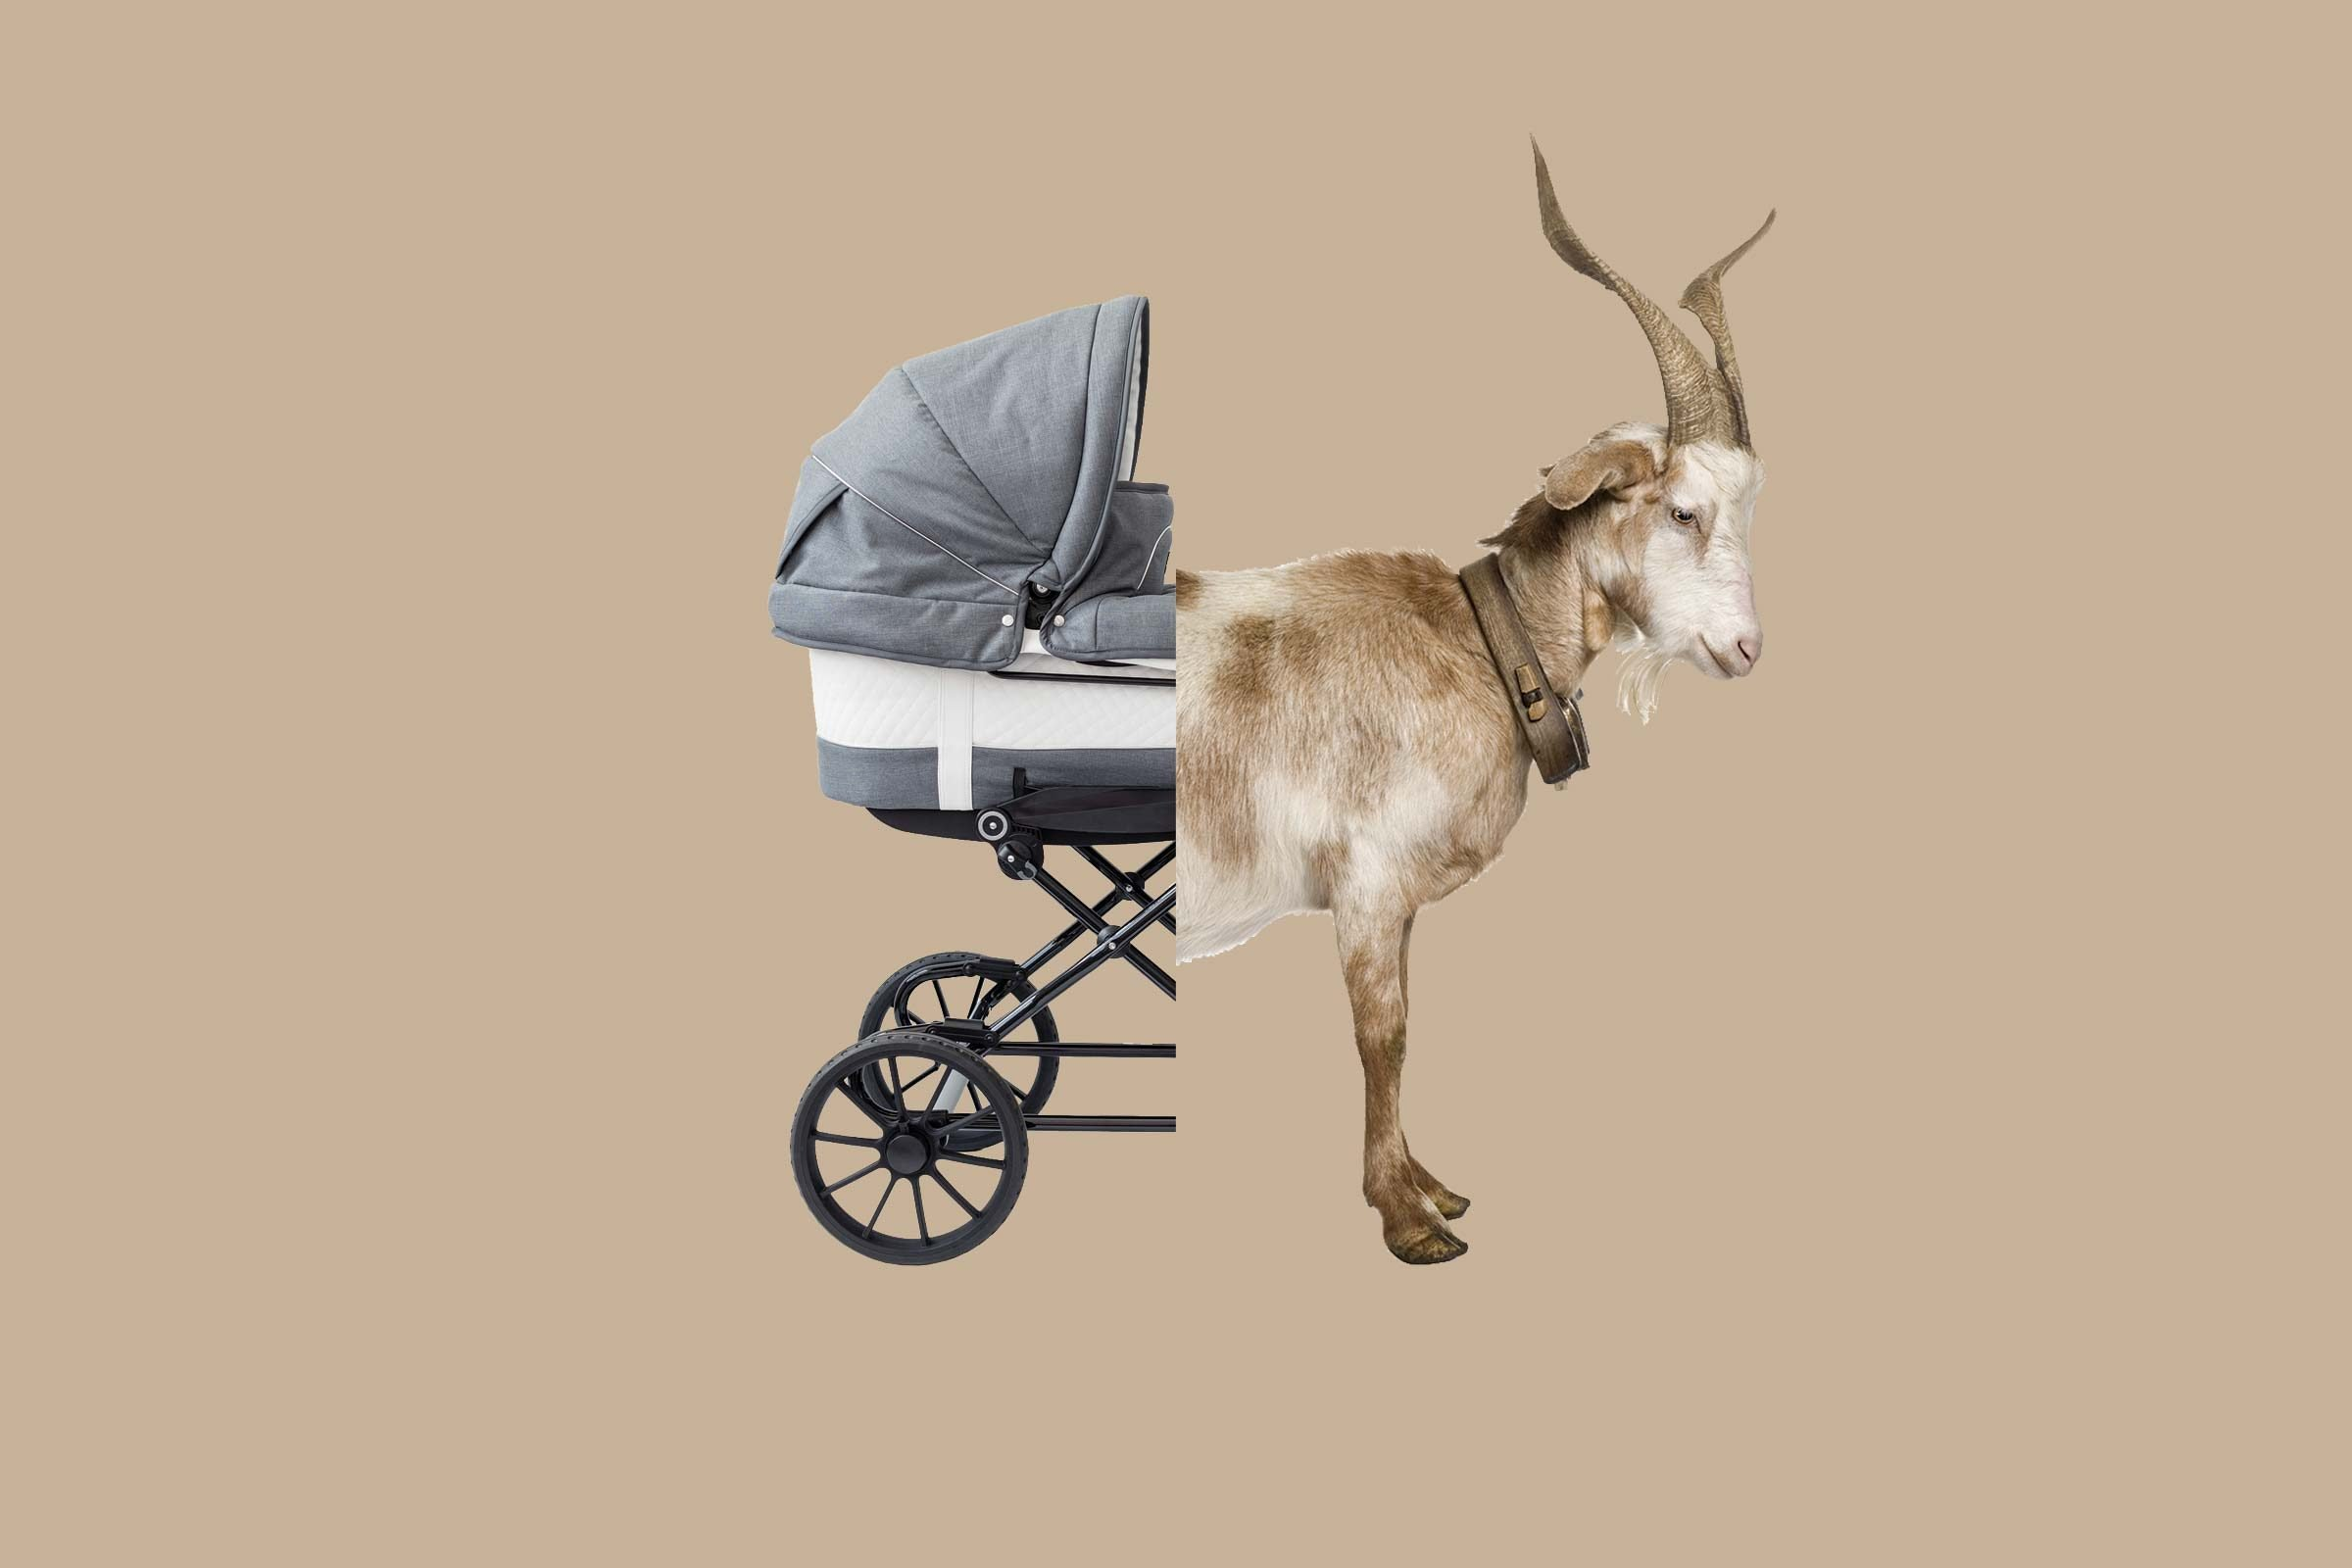 first stroller was pulled by a goat